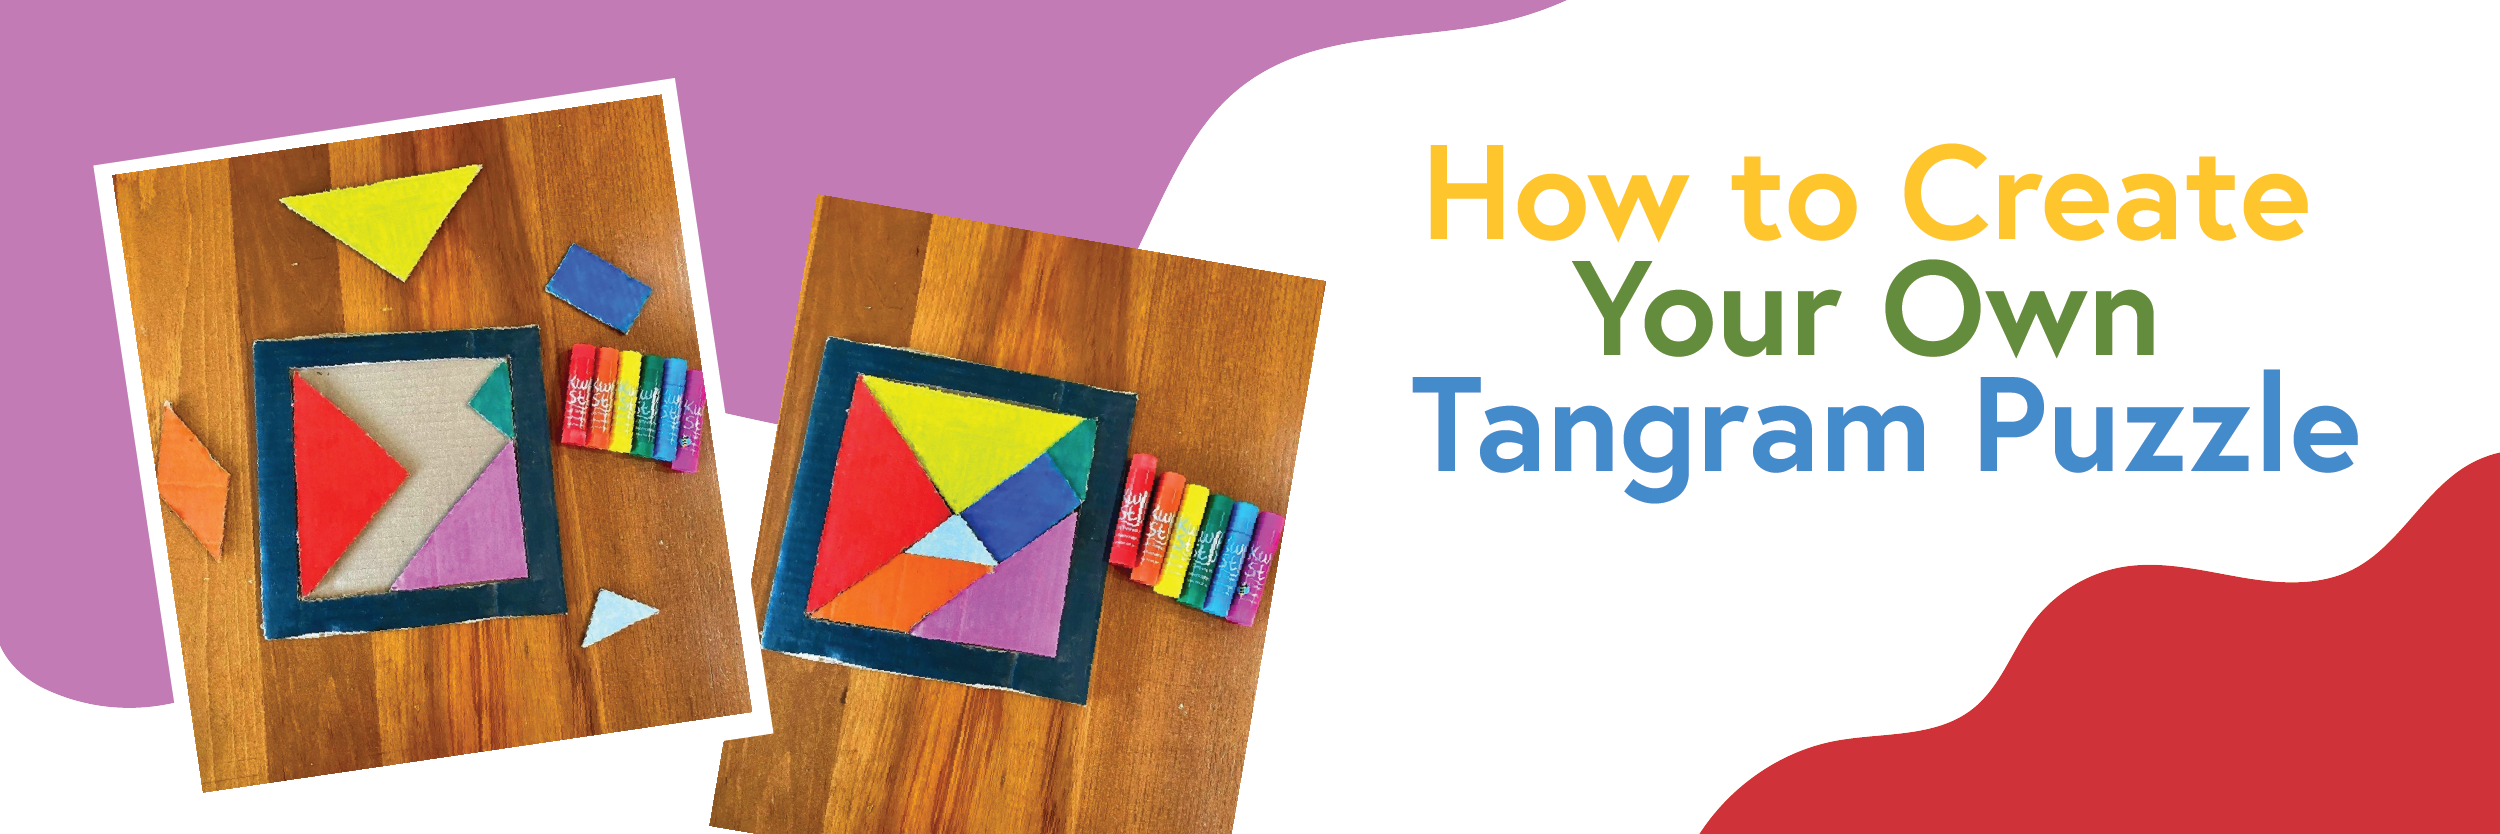 Create Your Own Cardboard Tangram Puzzle